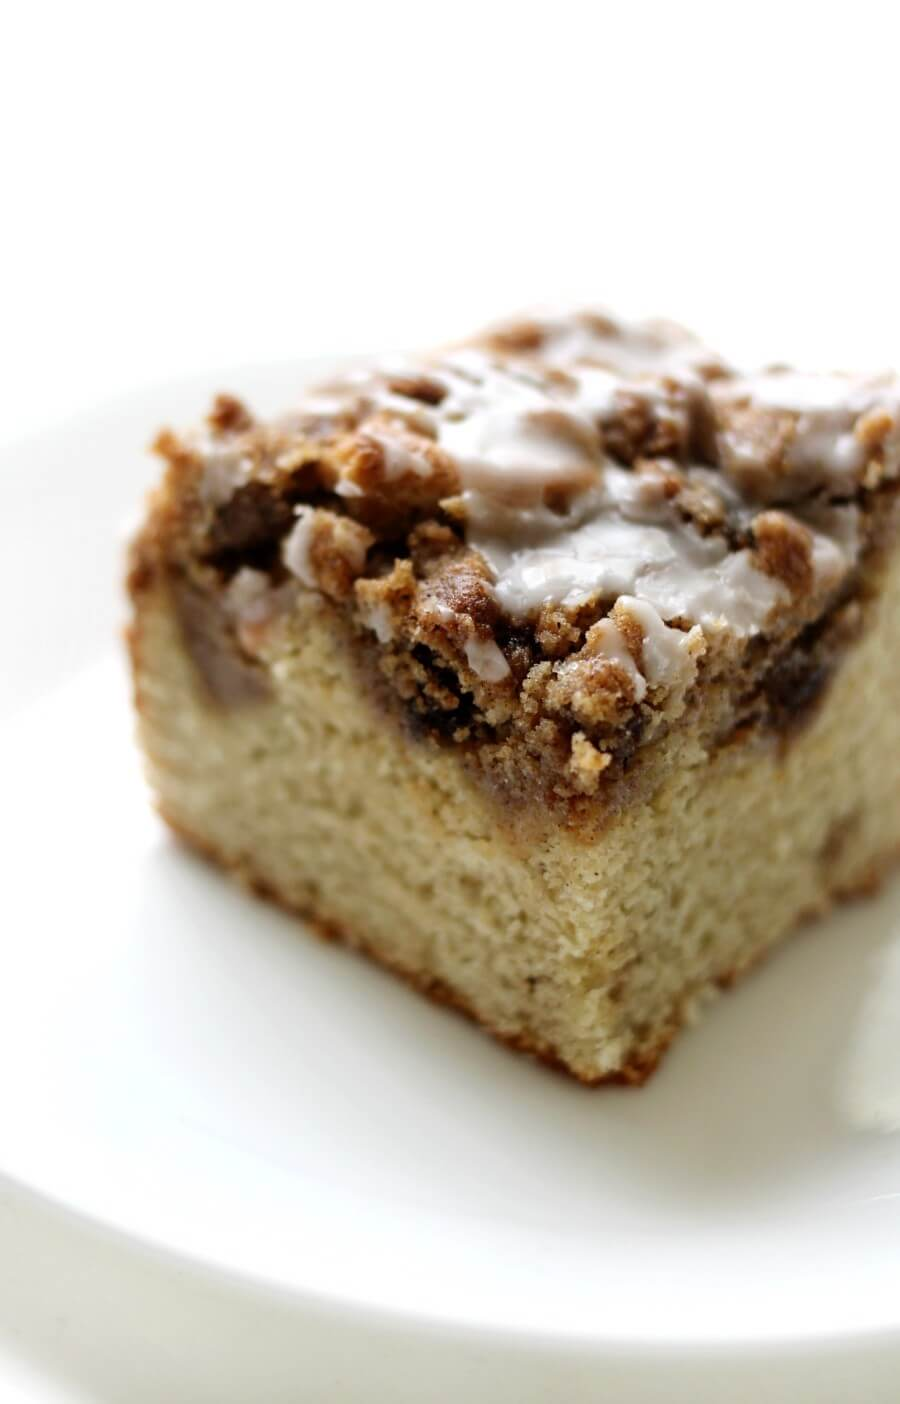 square slice of gluten-free coffee cake with cinnamon streusel